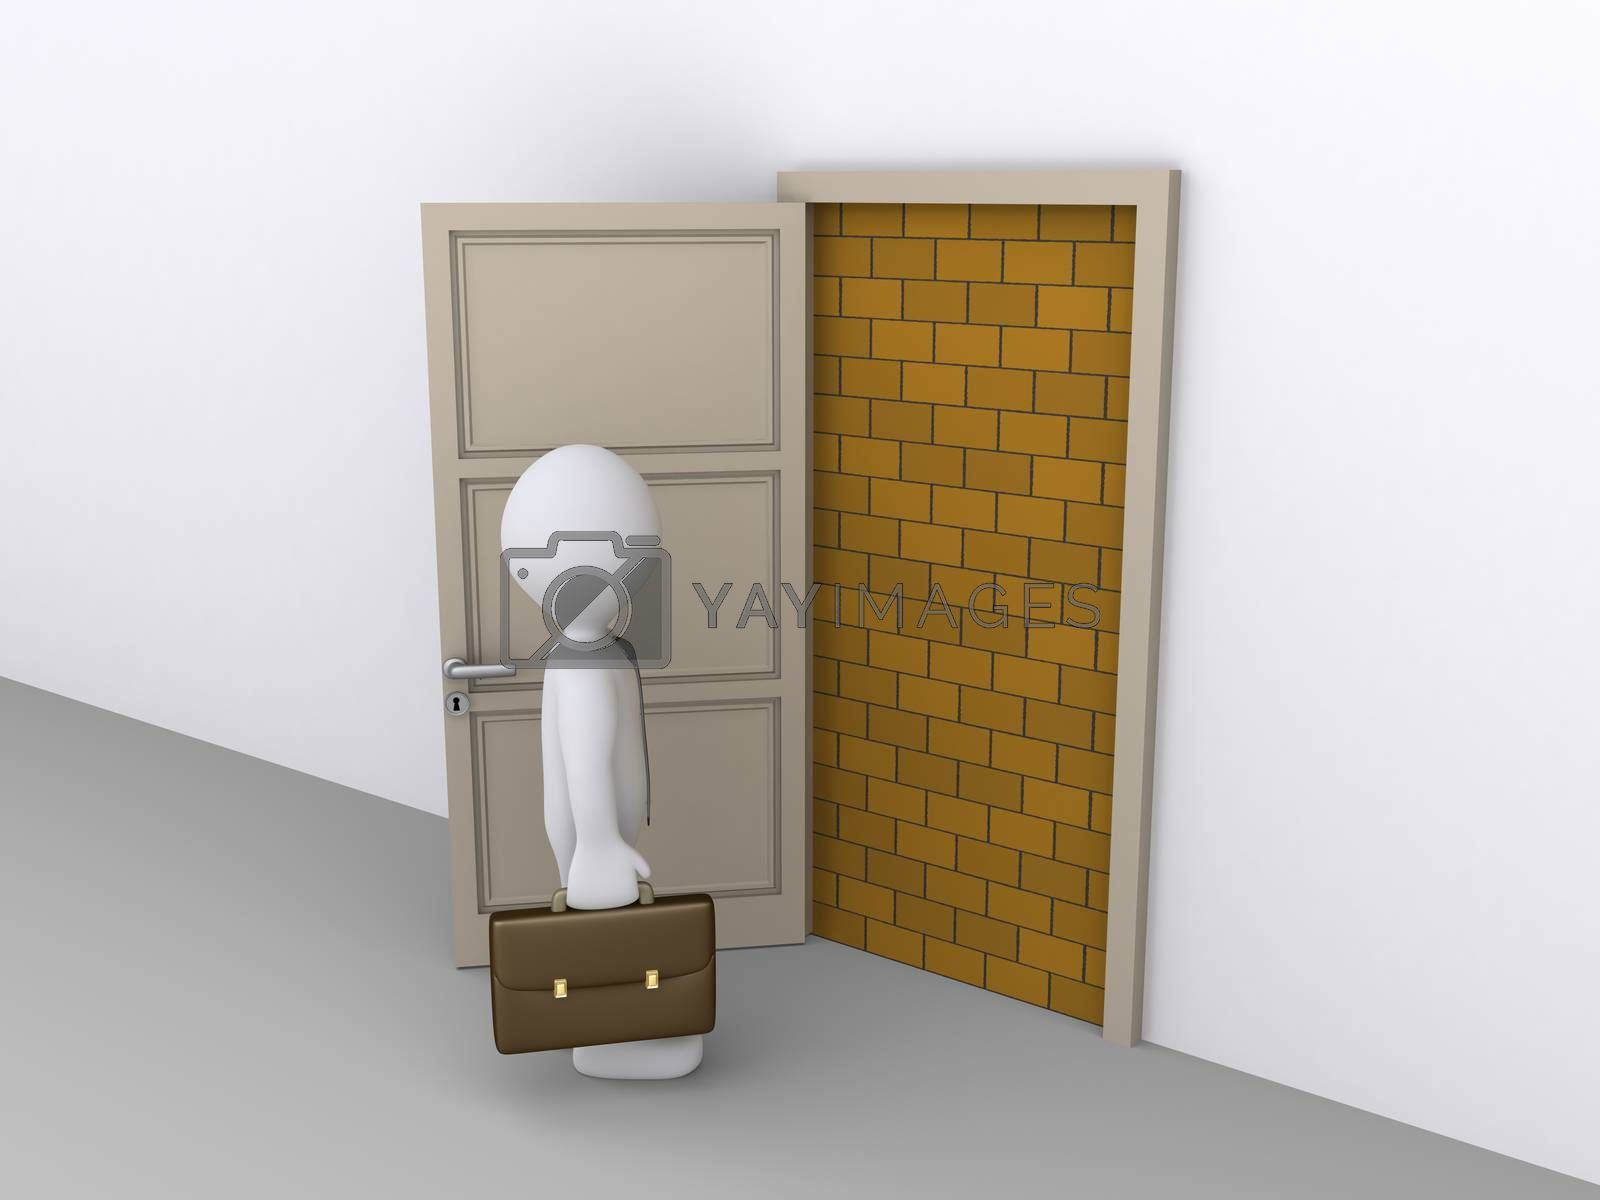 Blocked doorway and a businessman by 6kor3dos